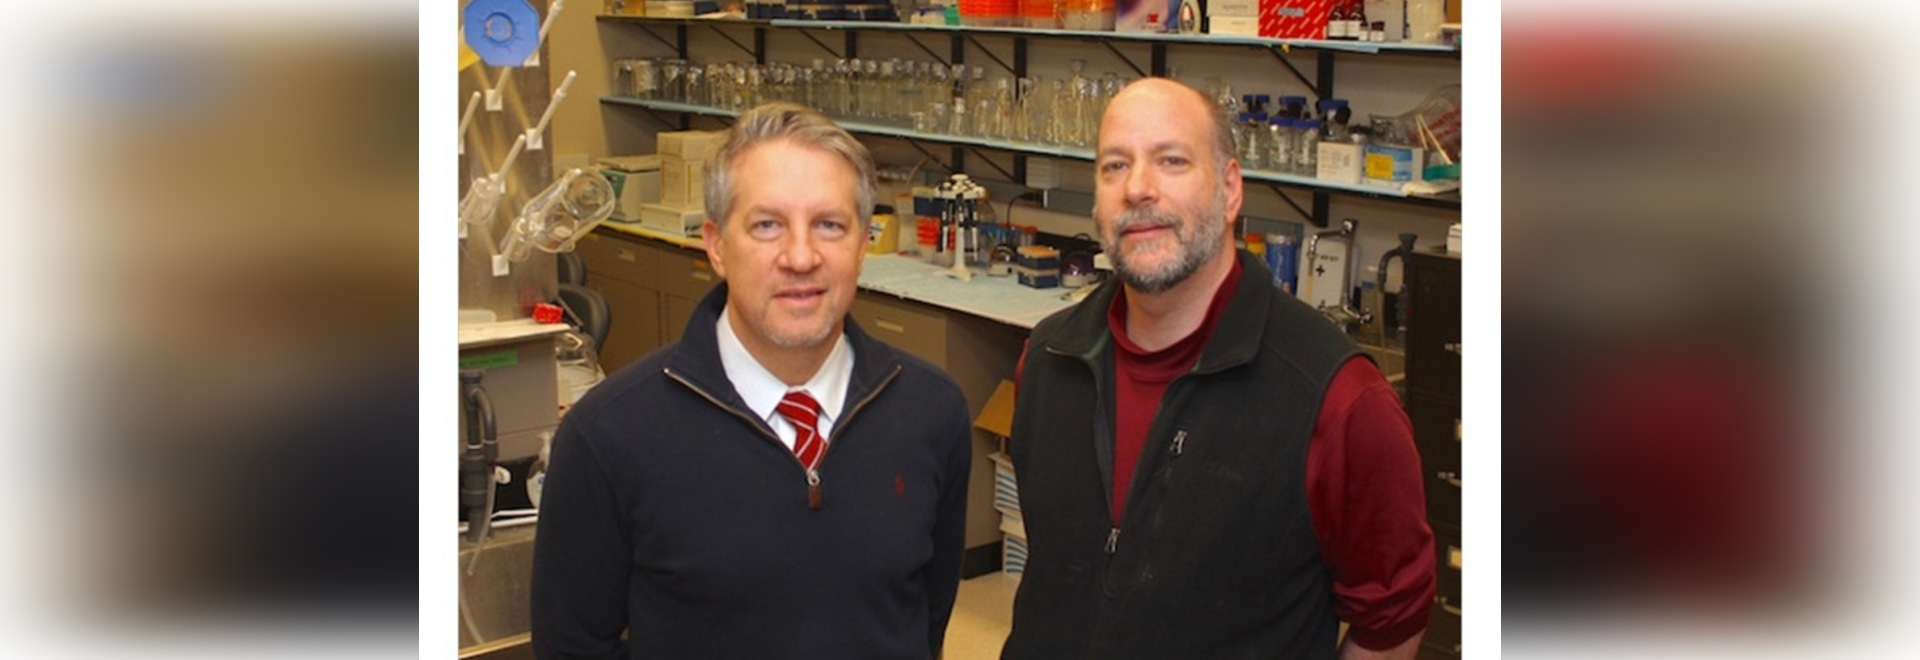 Drs. William Giannobile (left) and David Kohn of the University of Michigan will be part of the NIDCR's multi-organizational efforts to develop tissue regeneration therapy